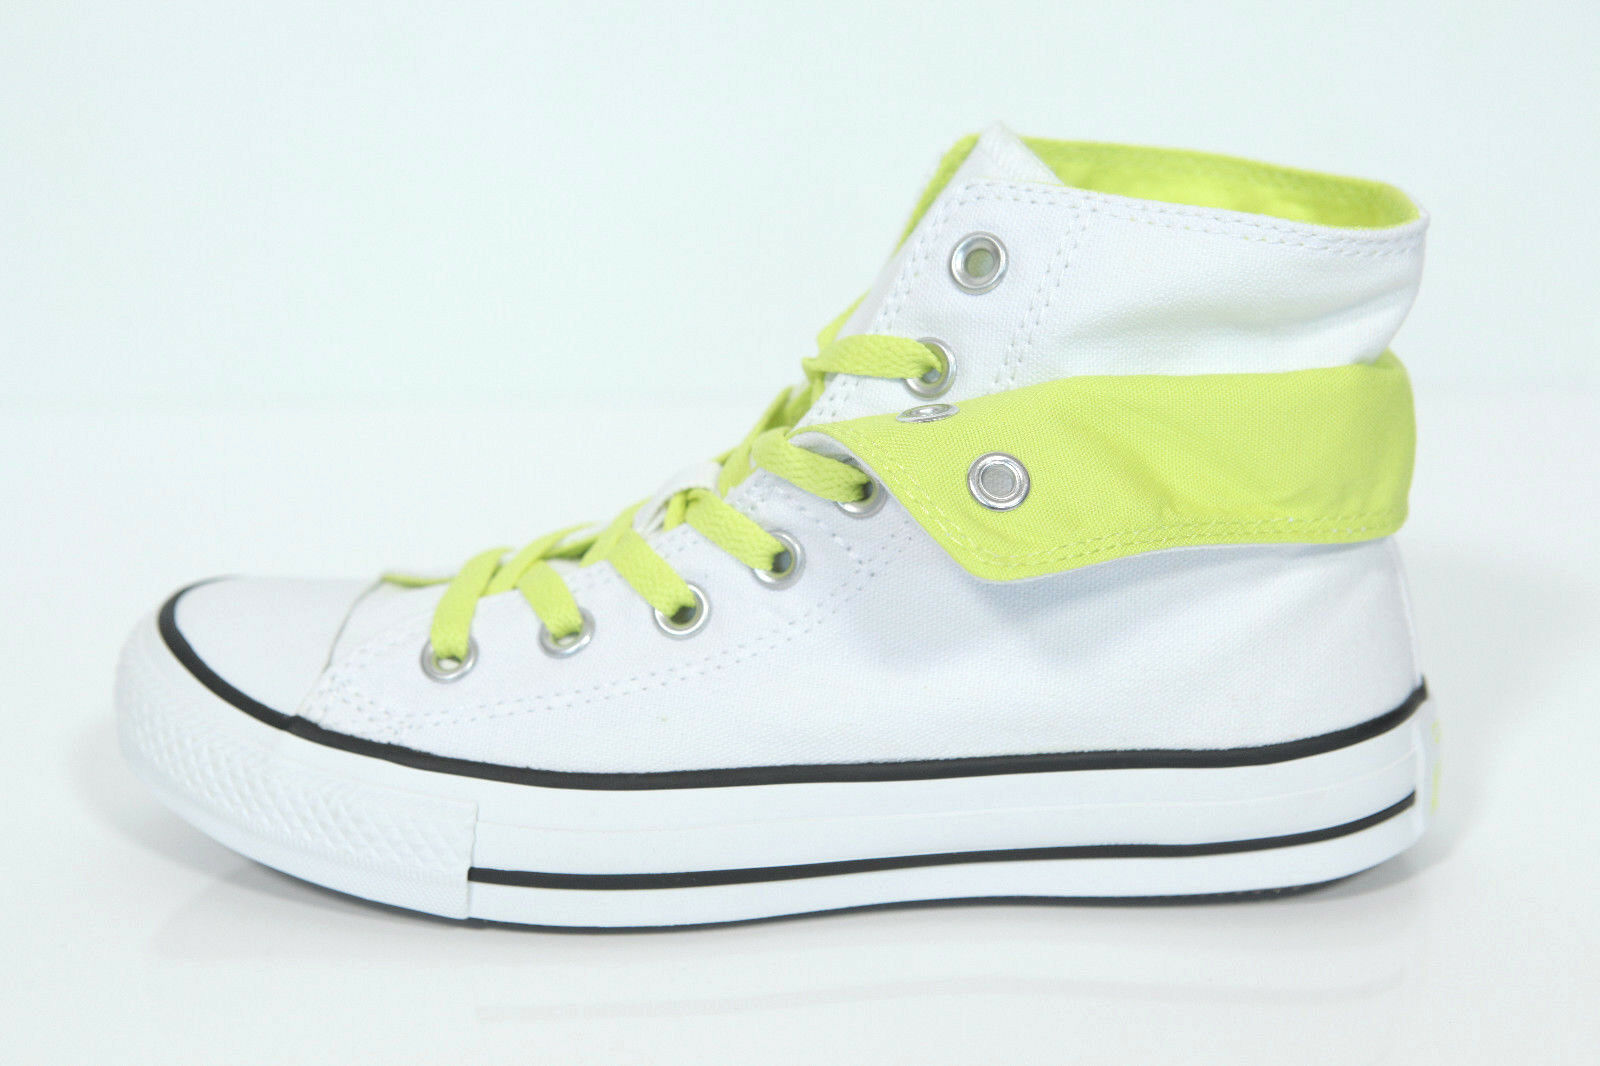 Neu All Star Converse Two Chucks Hi Two Converse Fold weiß citron Sneaker 542590c Retro Kult c36231